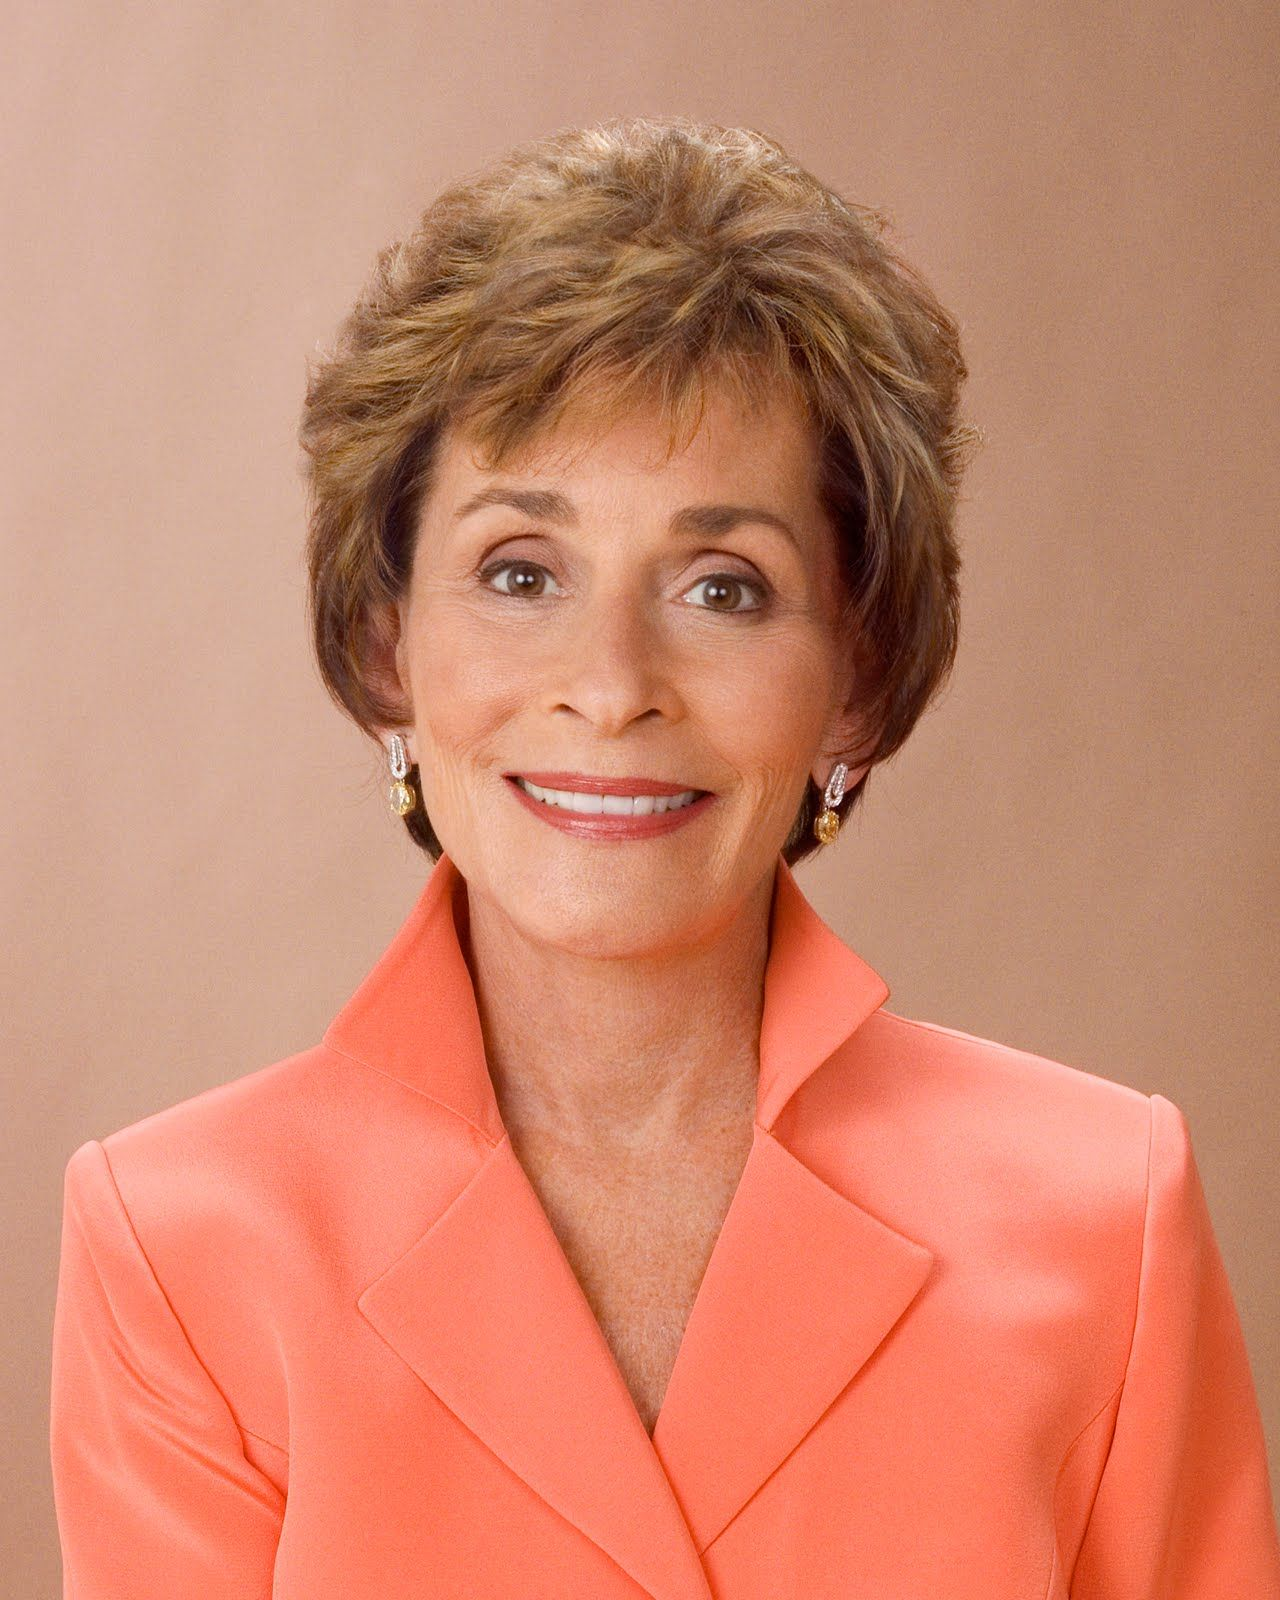 judith sheindlin (judge judy) she makes too much money,, and